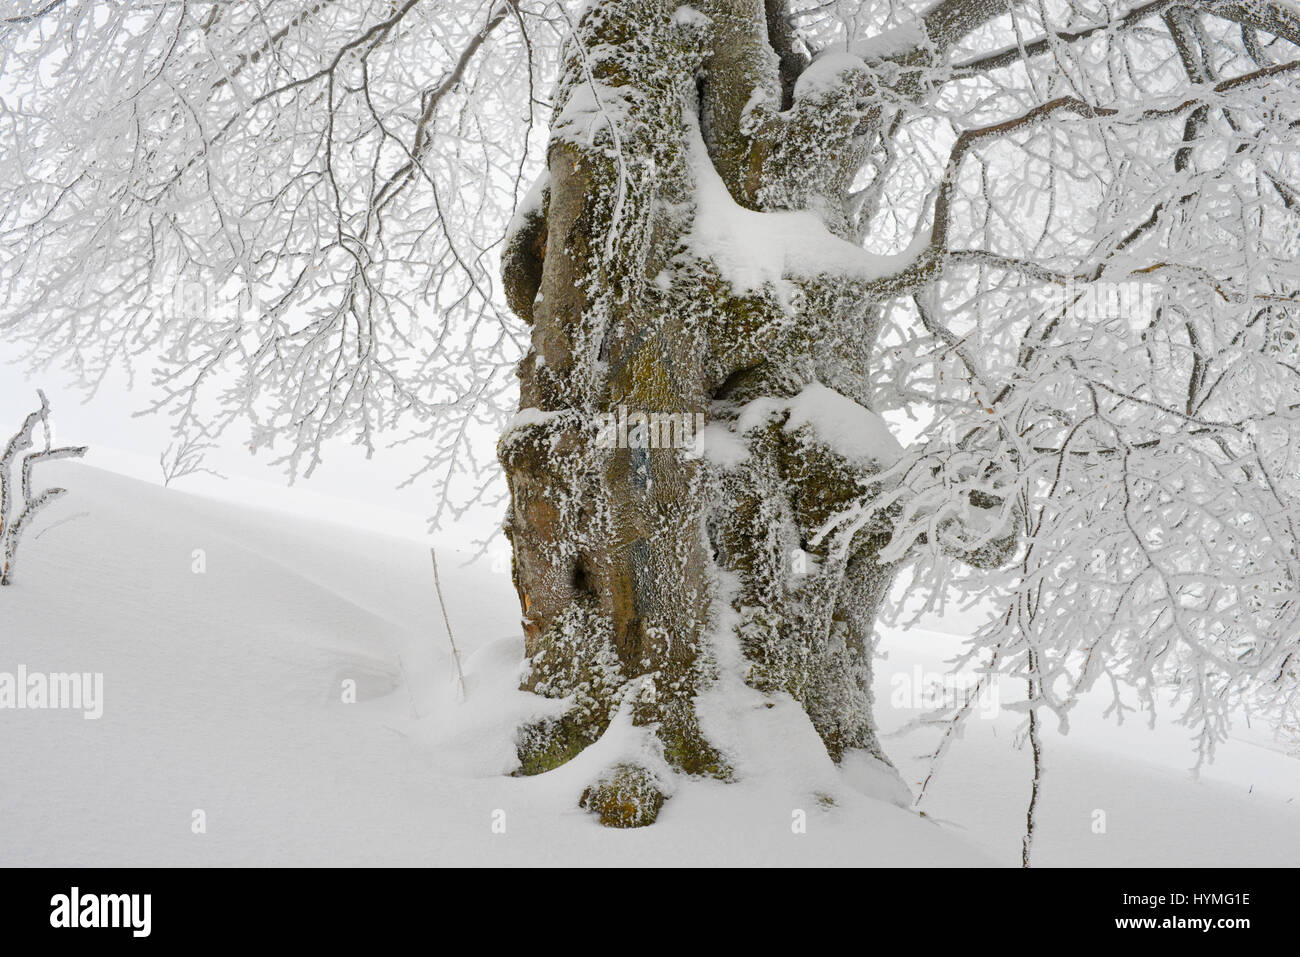 verry old centenarian tree survivor on the boarder wild forest in winter storm to guard the time at 1500 m - Stock Image